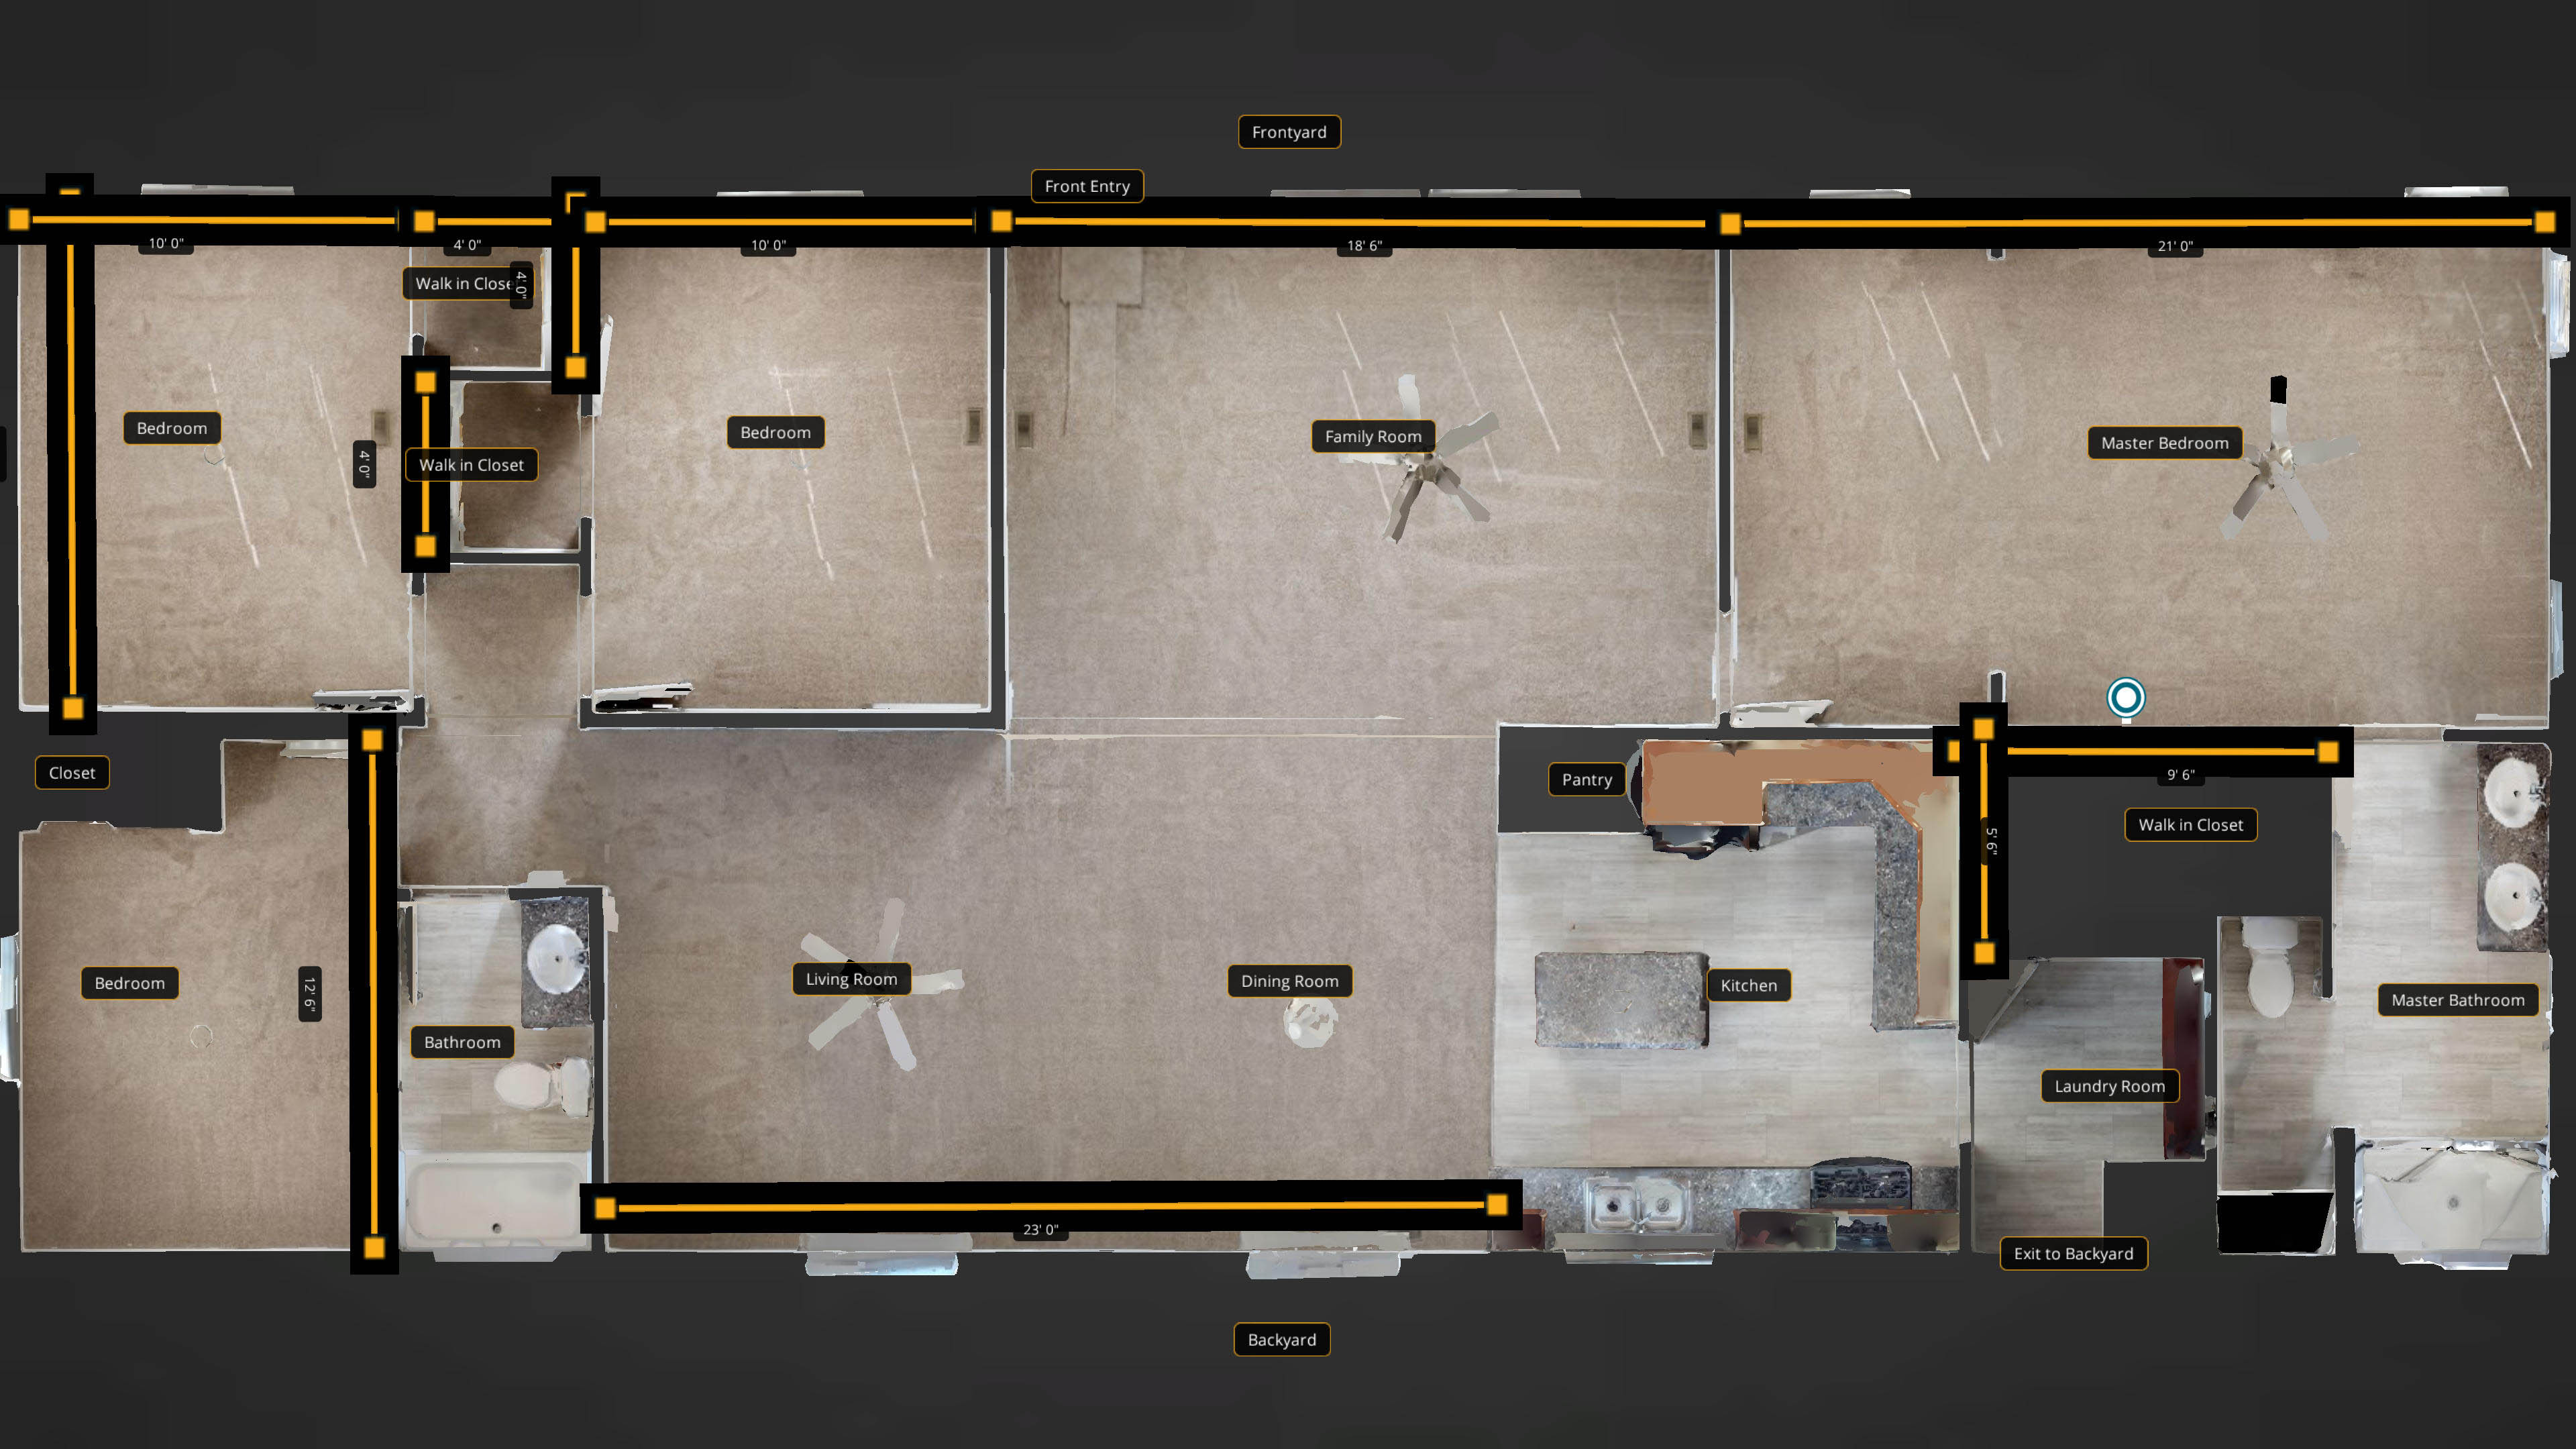 Floorplan with labels